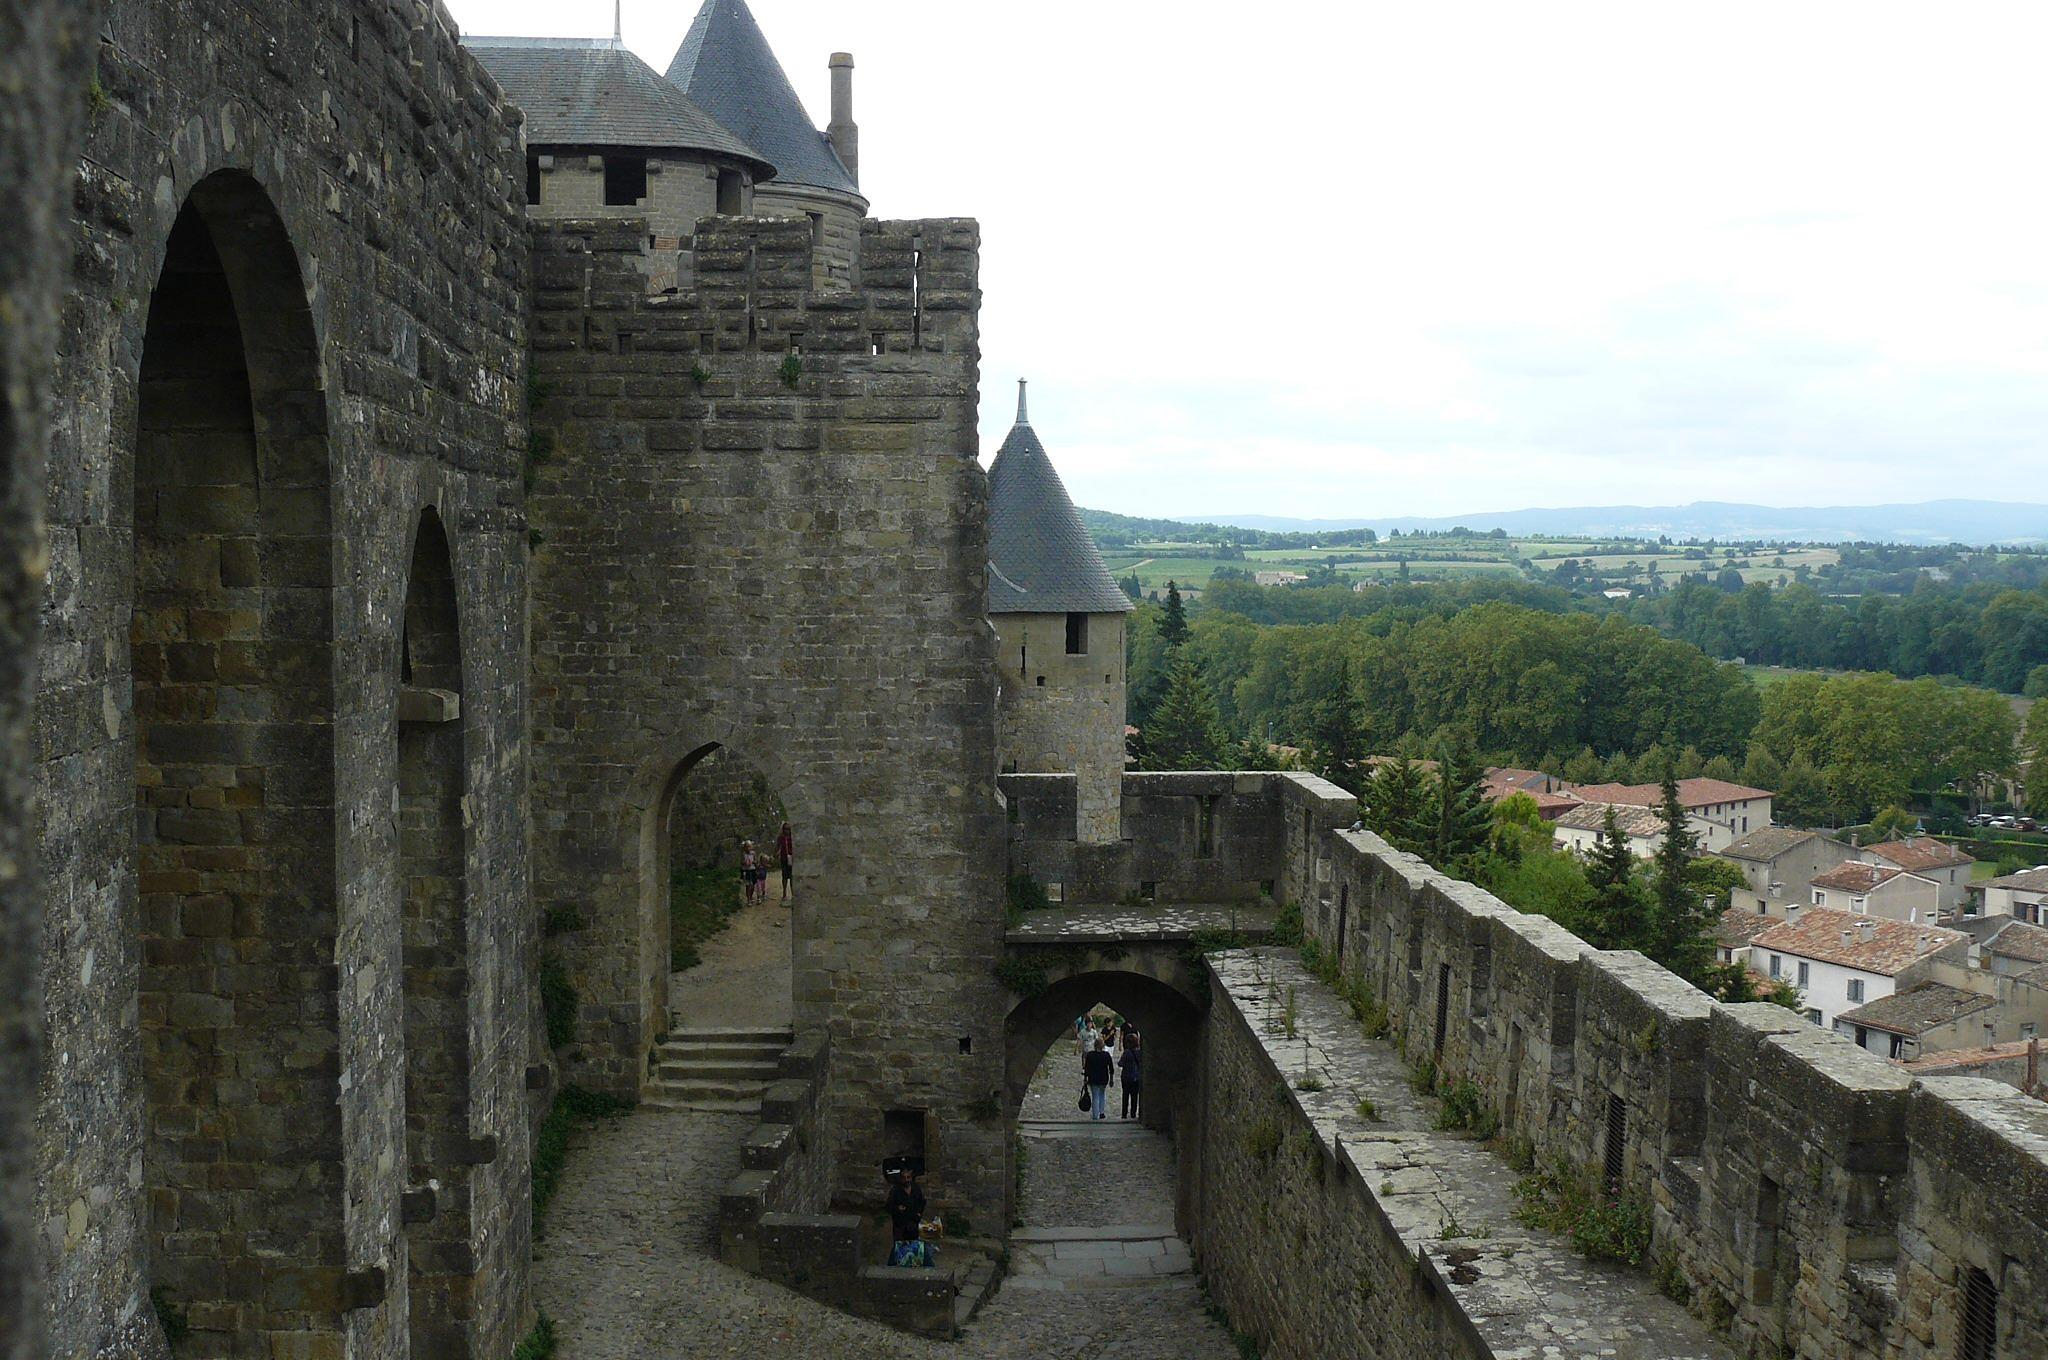 Carcassonne citadel by yankeebiscuitfan